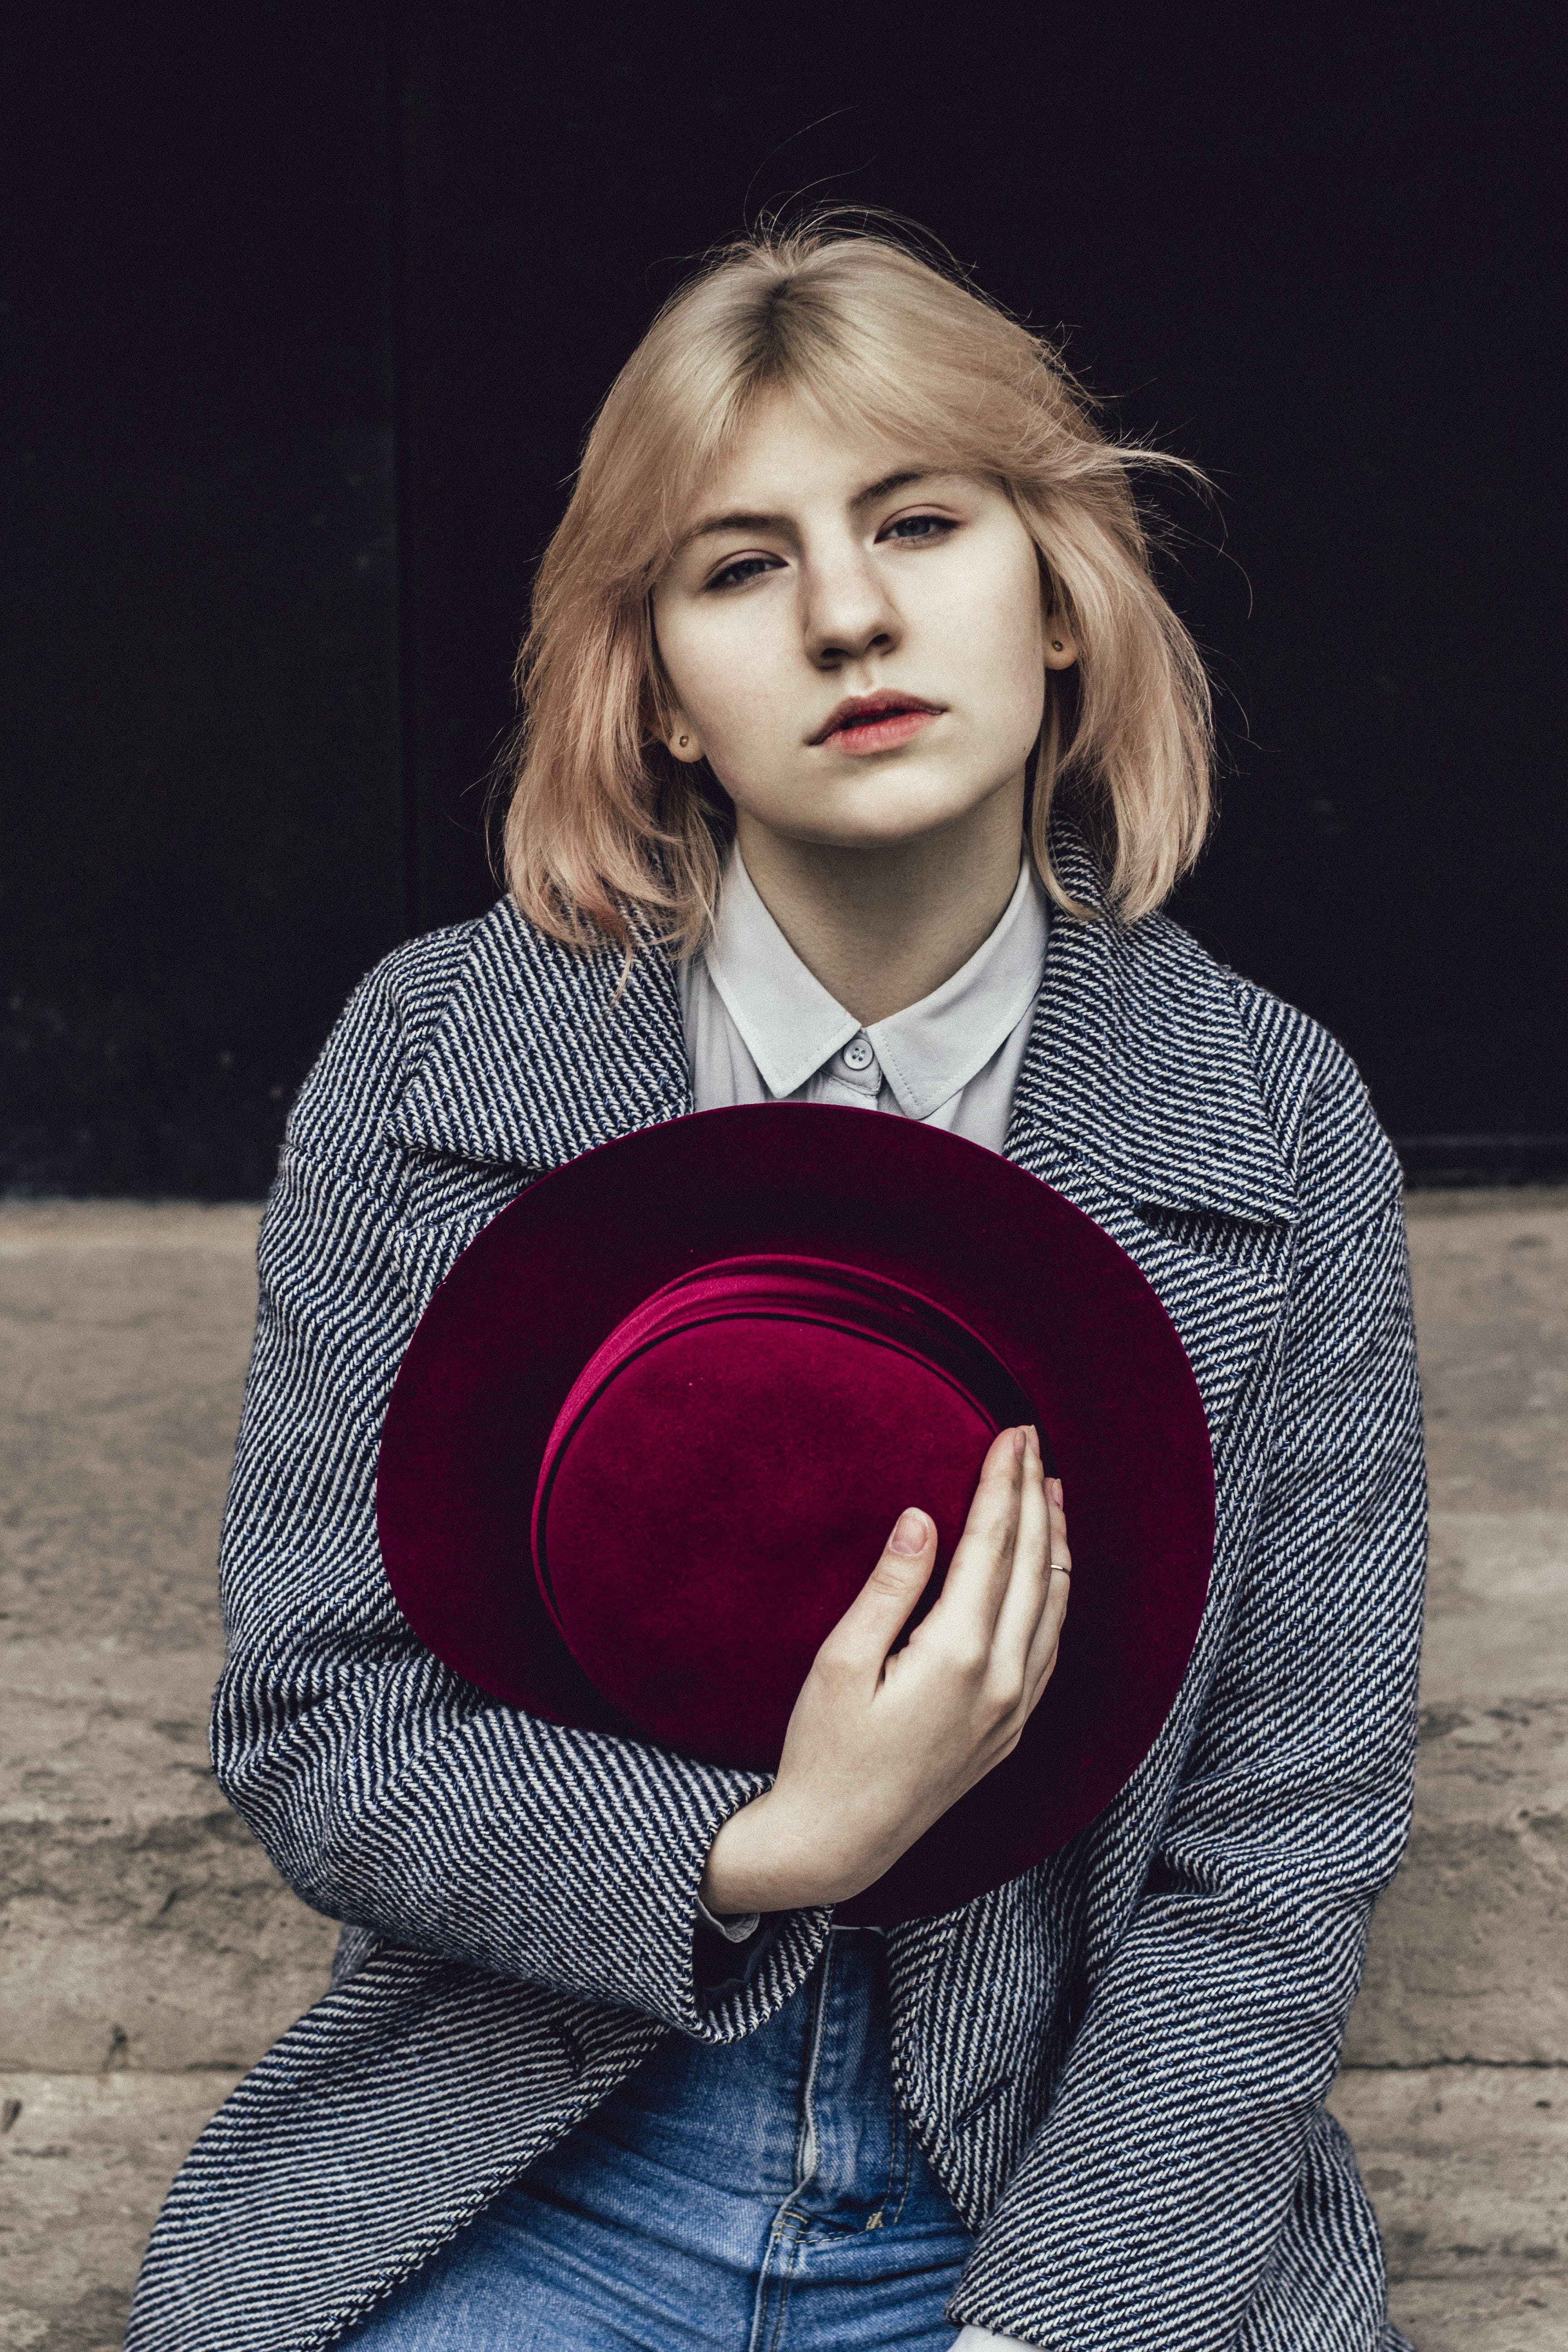 Woman in White Collared Top and Gray Coat Holding Red Fedora